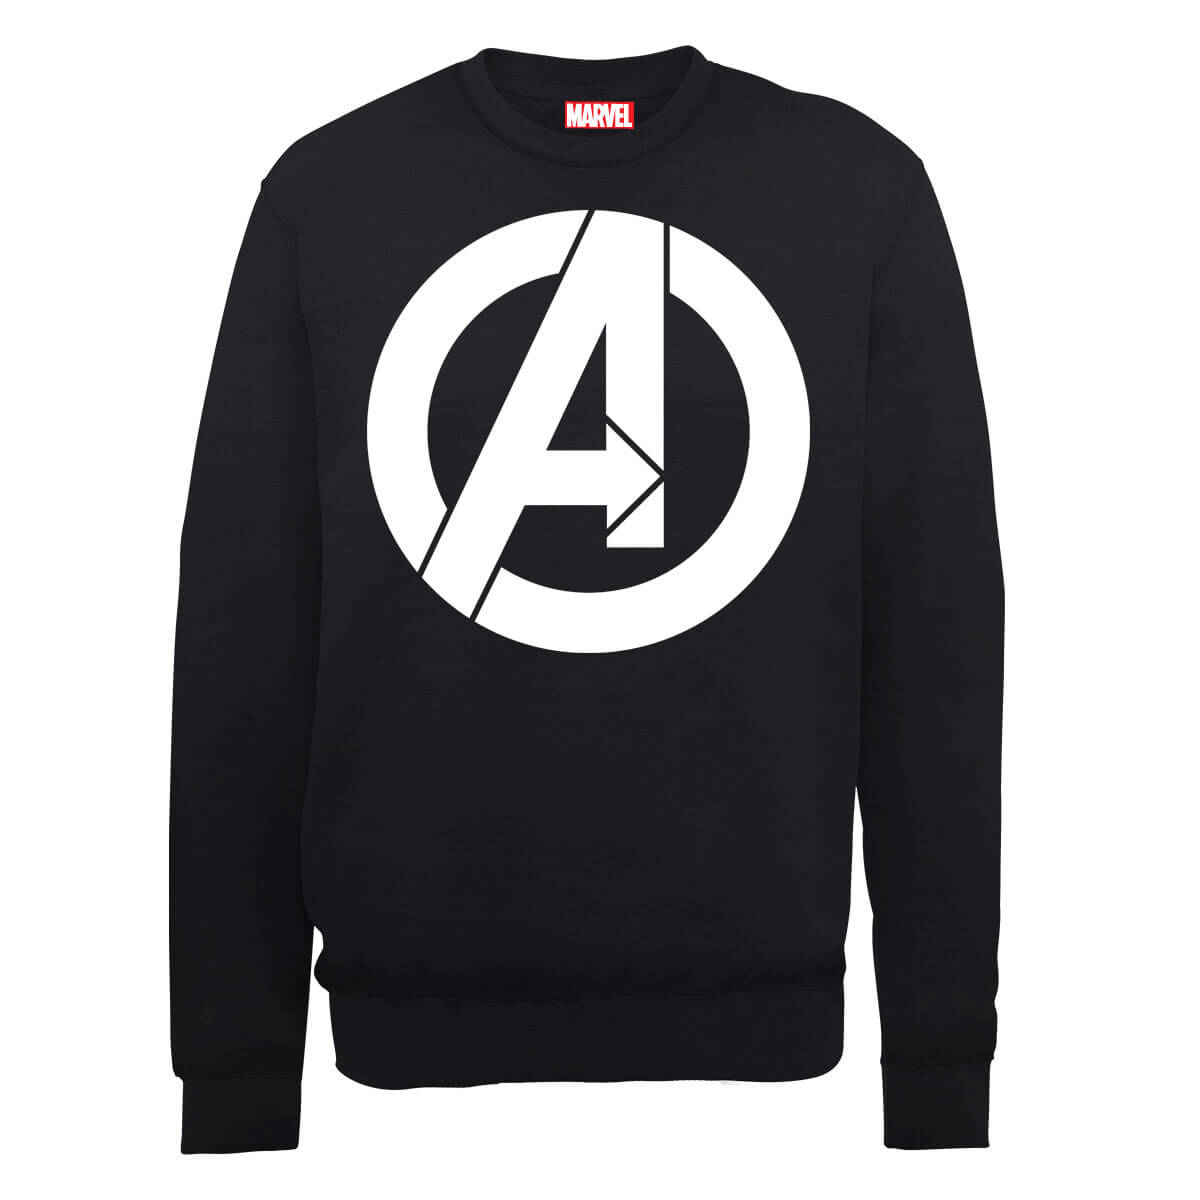 Marvel Avengers Assemble Simple Logo Sweatshirt - Black